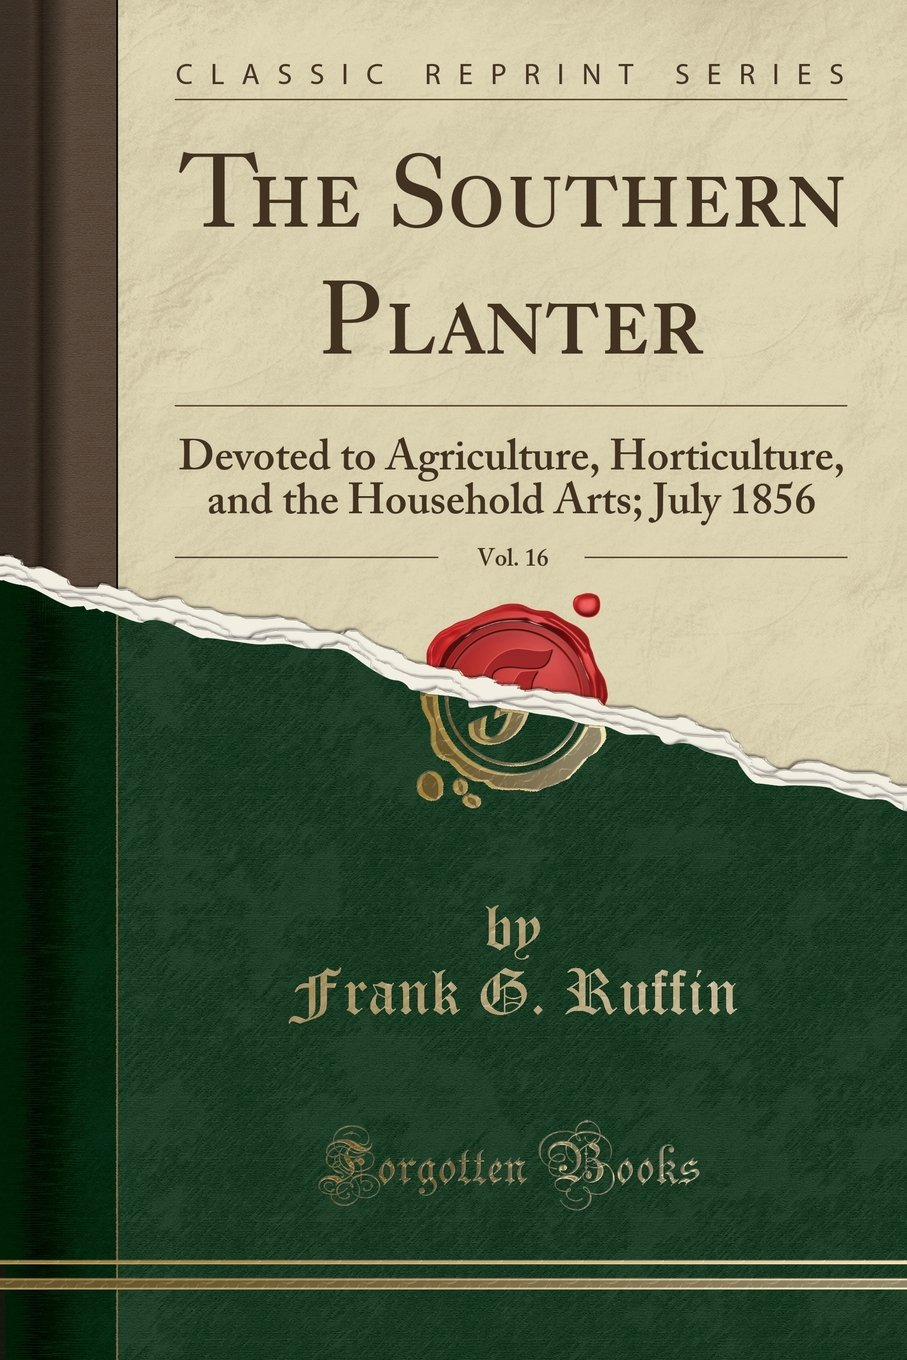 The Southern Planter, Vol. 16: Devoted to Agriculture, Horticulture, and the Household Arts; July 1856 (Classic Reprint) ebook